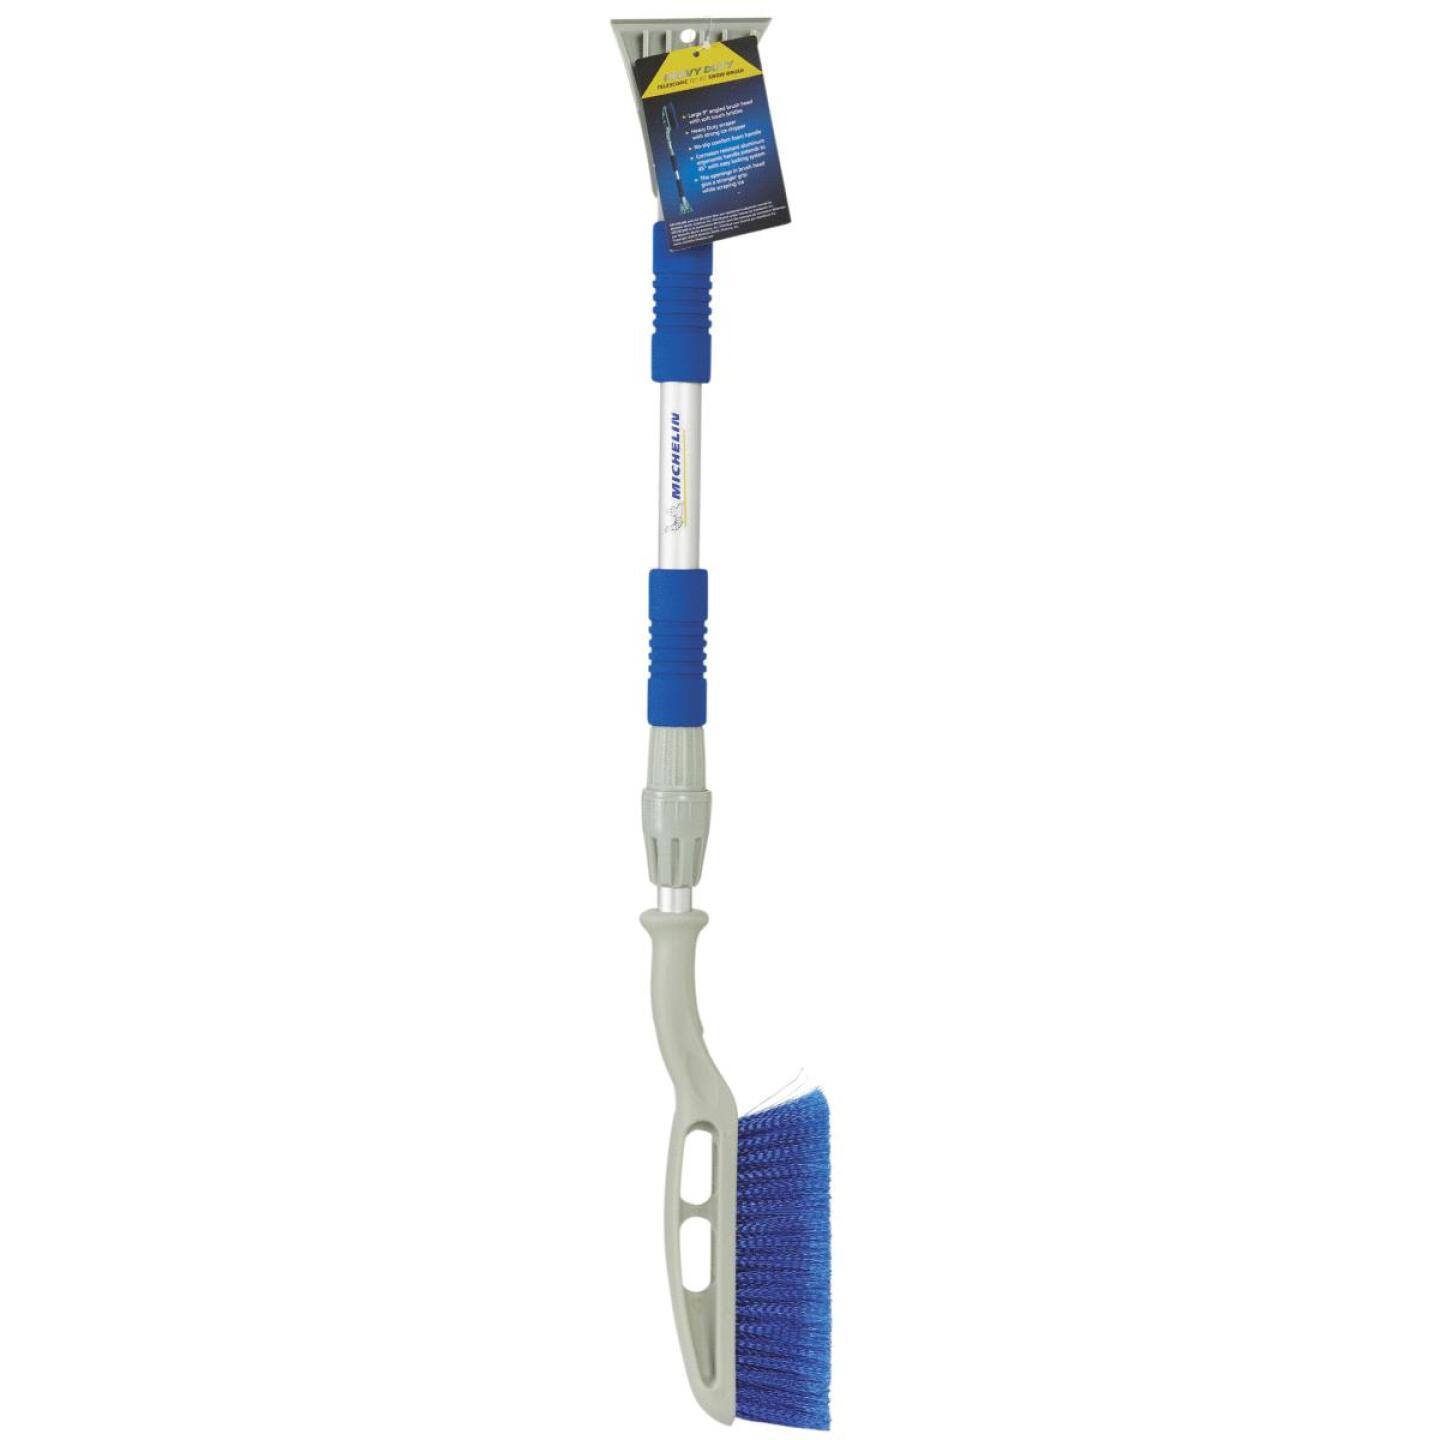 Michelin 42 In. Steel Ice Chisel Telescopic Snowbrush with Ice Scraper Image 2